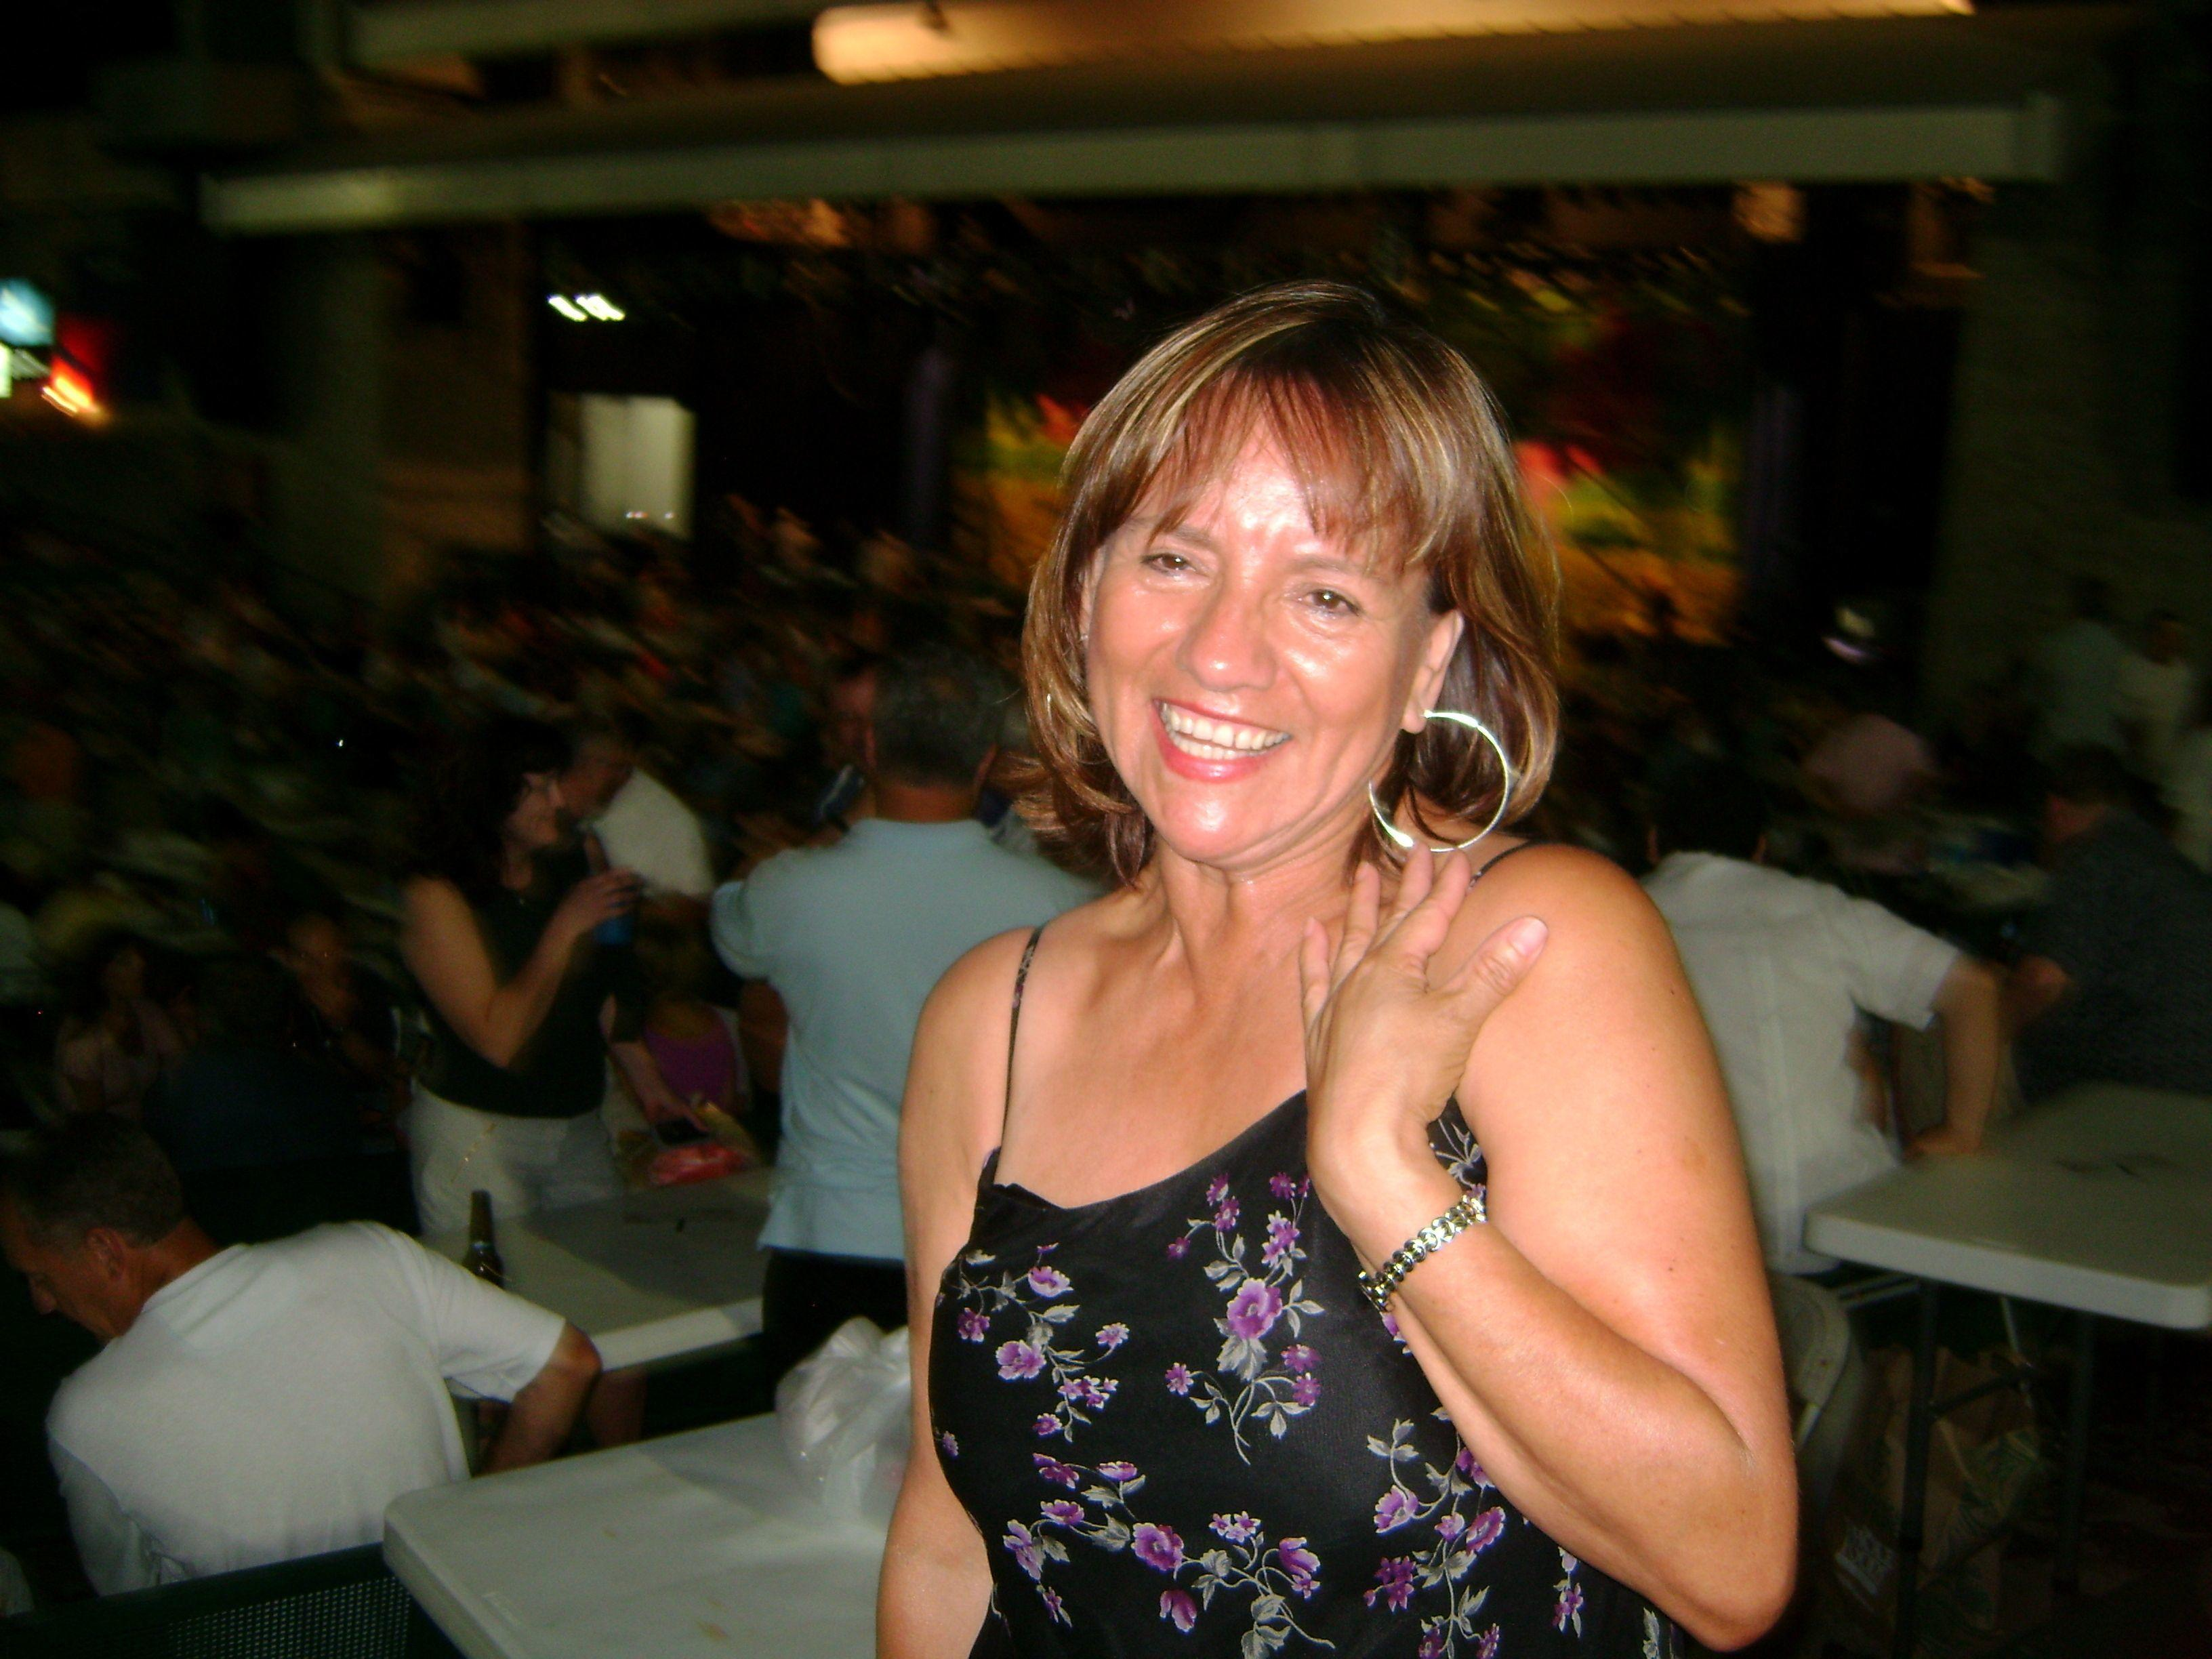 tanner singles over 50 Here are our 11 best dating sites for over 50 ourtime is quickly becoming one of the most popular dating sites exclusively for singles over 50.